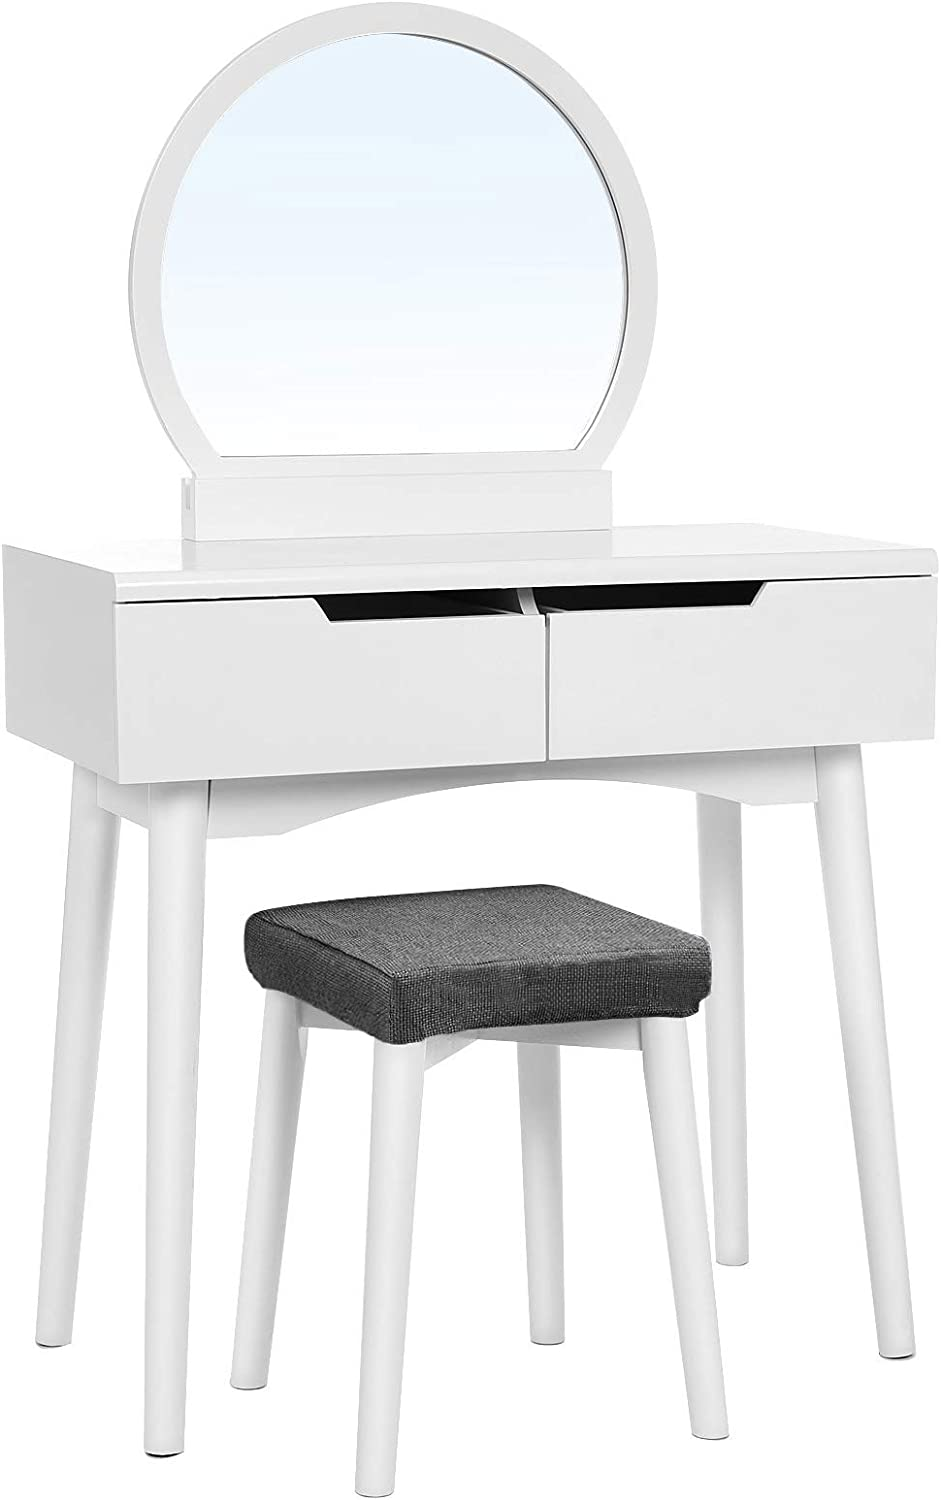 Vasagle Vanity Set Makeup Dressing Table With Round Mirror 2 Large Drawers With Sliding Rails Cushioned Stool White Urdt11w 31 1 2 L X 15 3 4 W X 51 3 8 H Home Kitchen Amazon Com